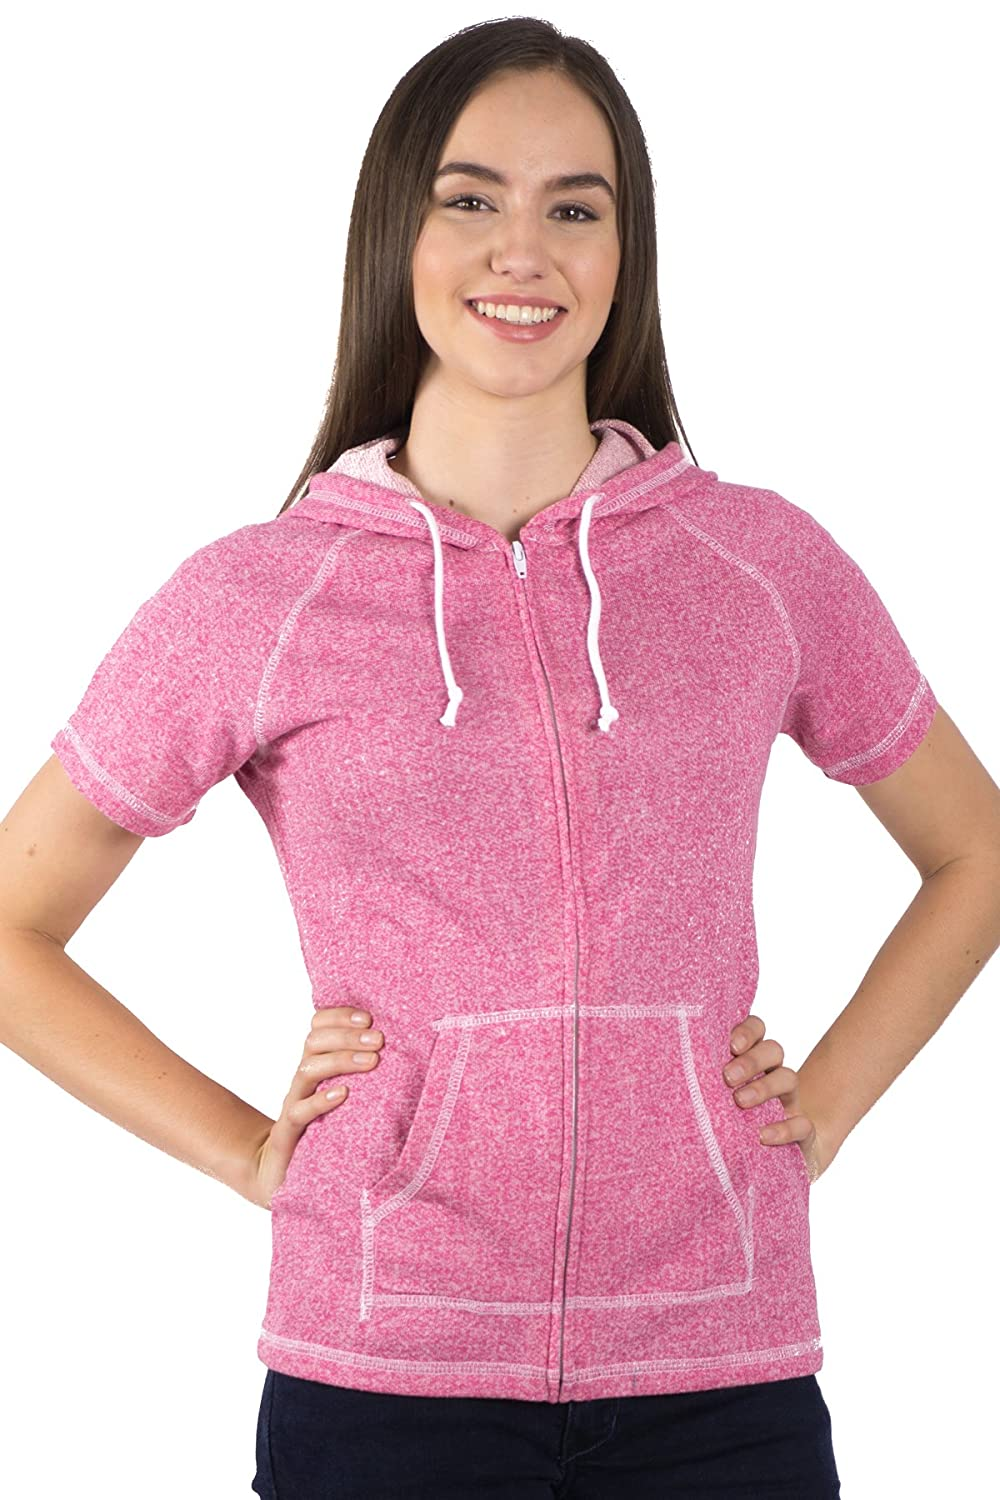 4a5f8052 PimaTee Women's French Terry Short Sleeve Zip Hoodie at Amazon Women's  Clothing store: